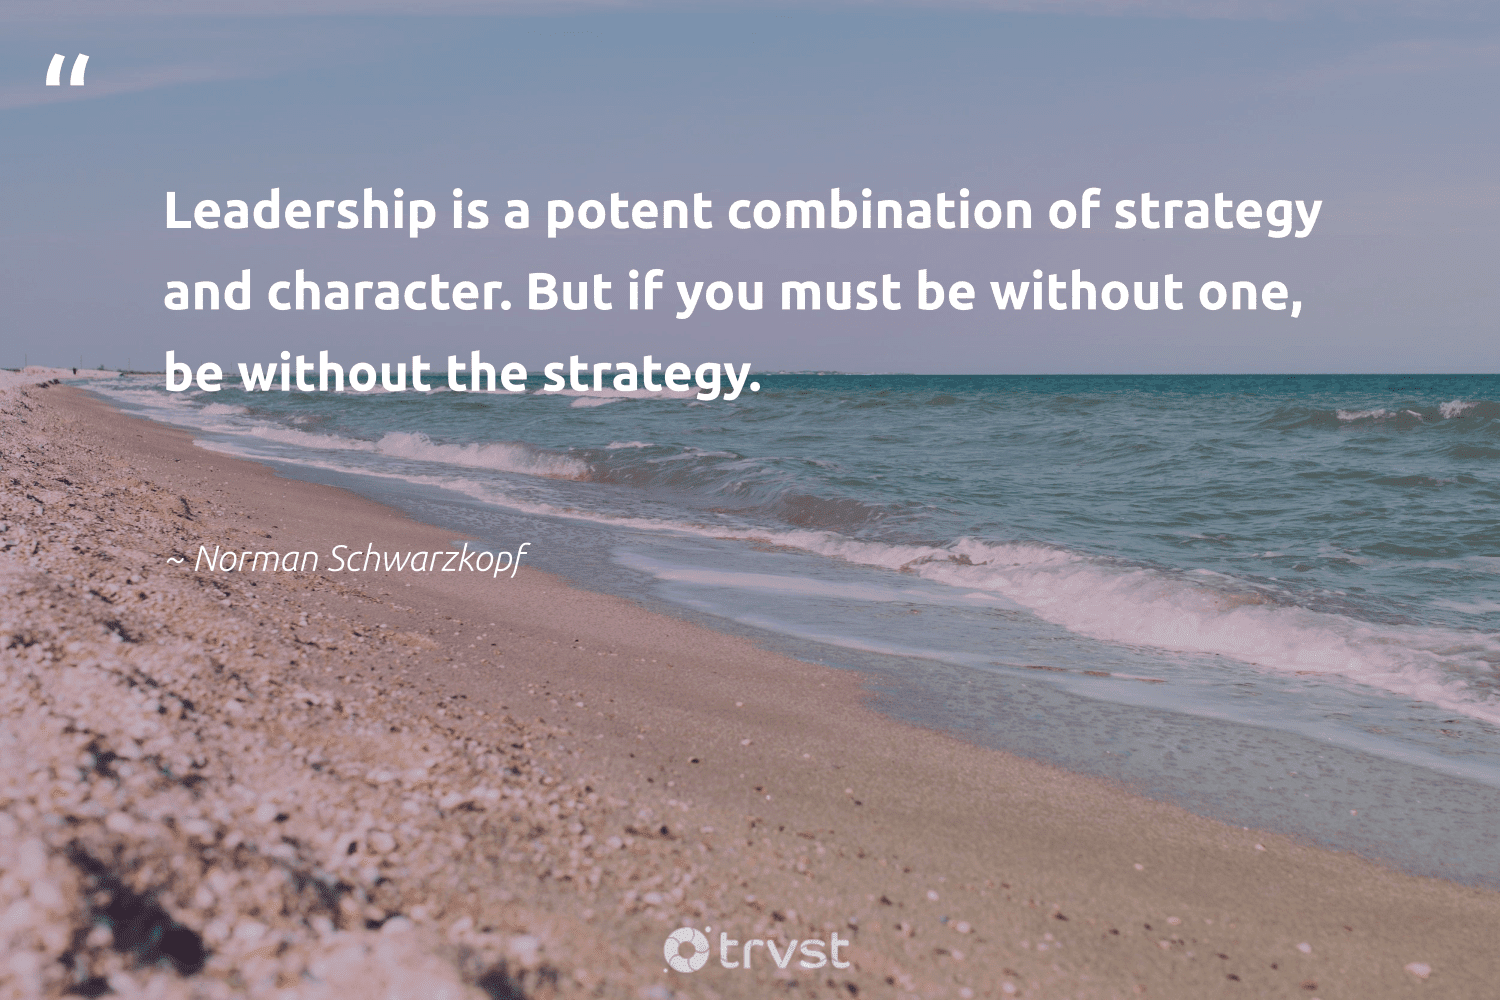 """""""Leadership is a potent combination of strategy and character. But if you must be without one, be without the strategy.""""  - Norman Schwarzkopf #trvst #quotes #leadership #leadershipqualities #softskills #nevergiveup #bethechange #leadershipskills #begreat #futureofwork #socialchange #leadershipdevelopment"""